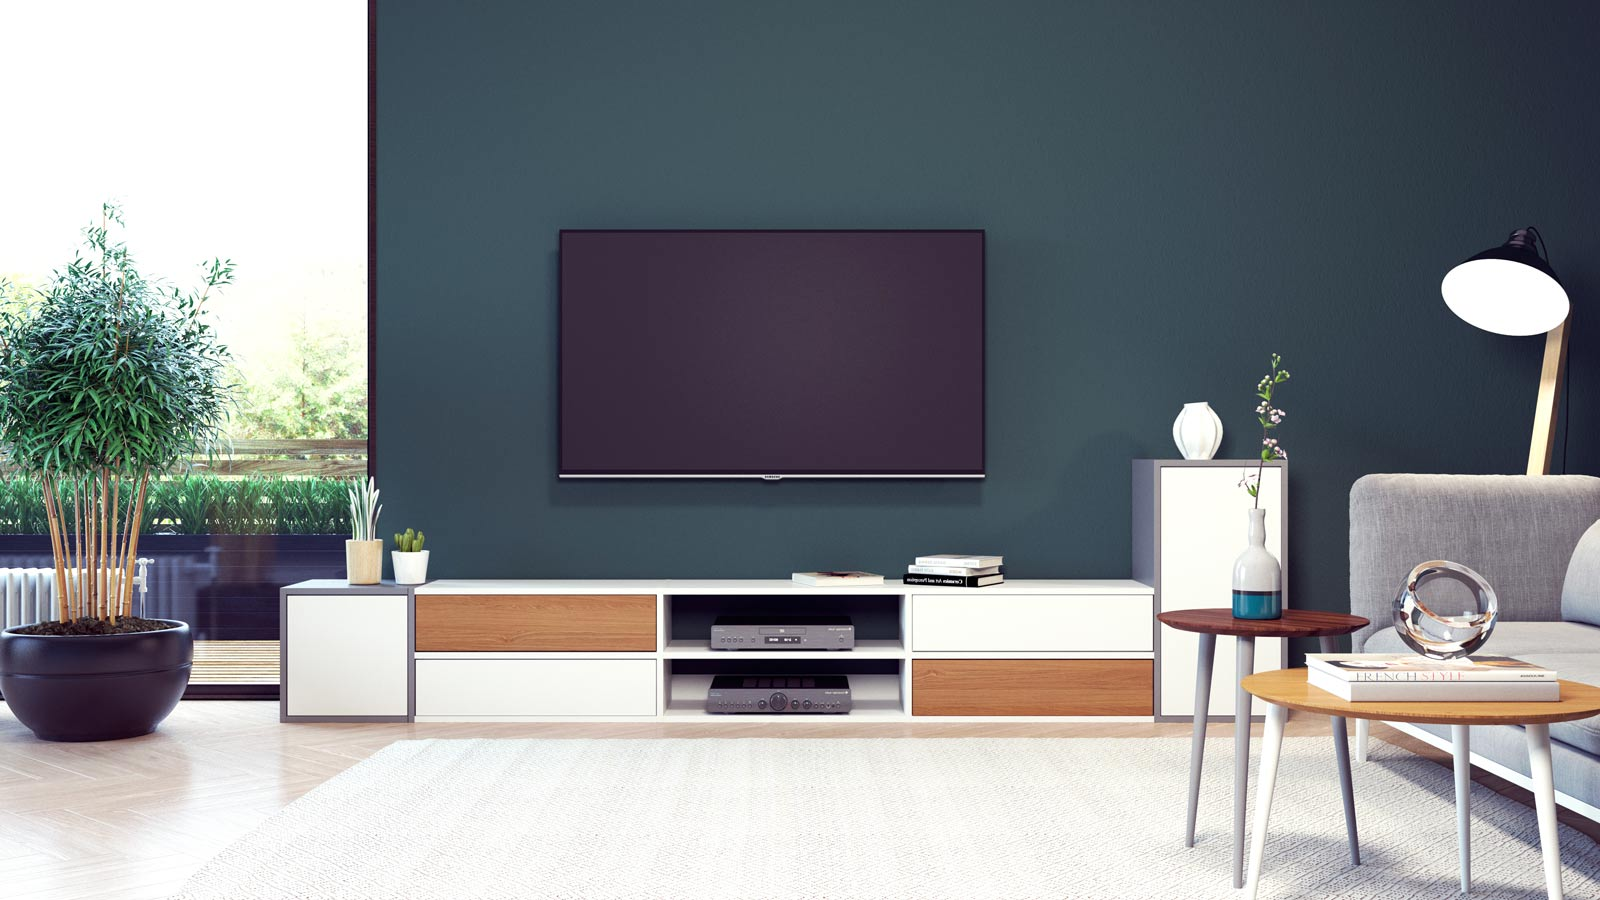 schr nke bei mycs tv boards selbst gestalten mycs schweiz. Black Bedroom Furniture Sets. Home Design Ideas